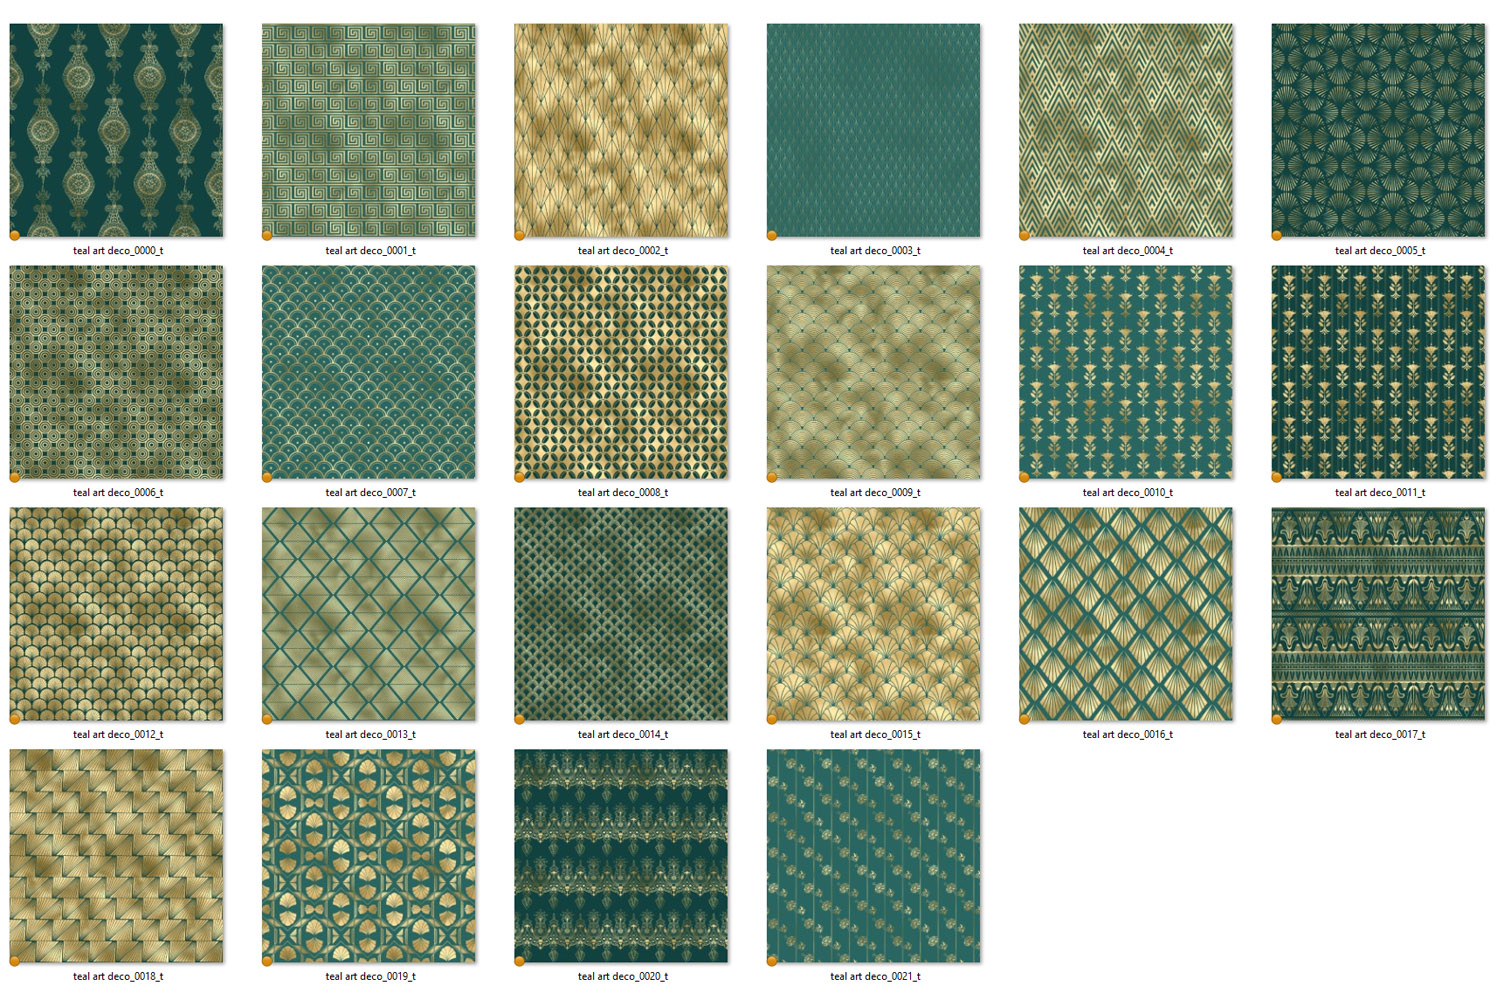 Teal and Gold Art Deco Digital Paper example image 5